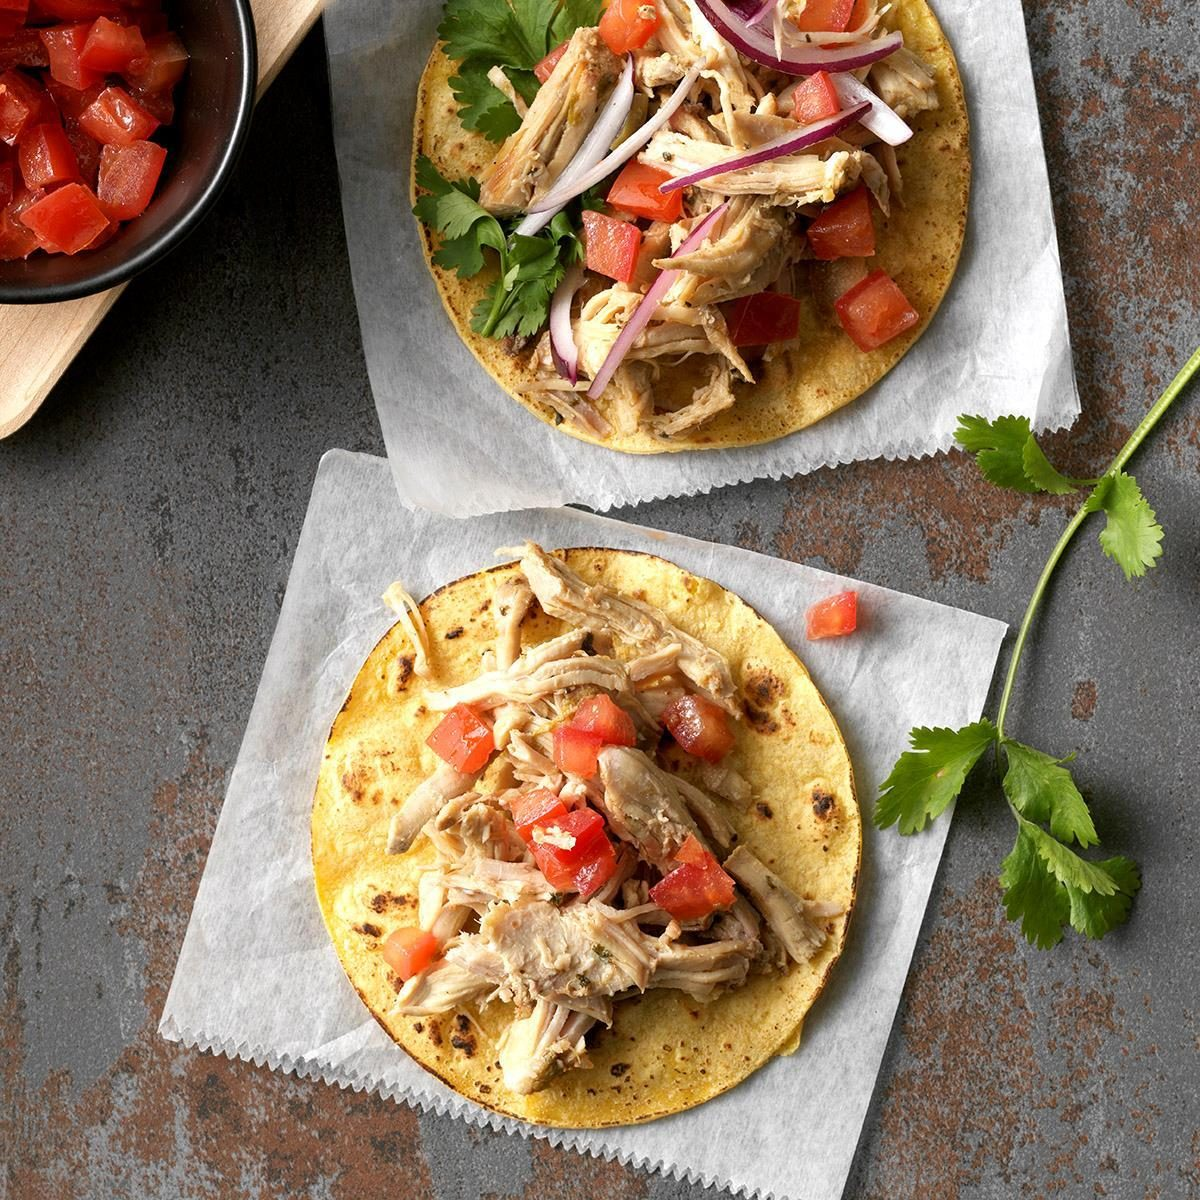 22: Slow-Cooked Carnitas